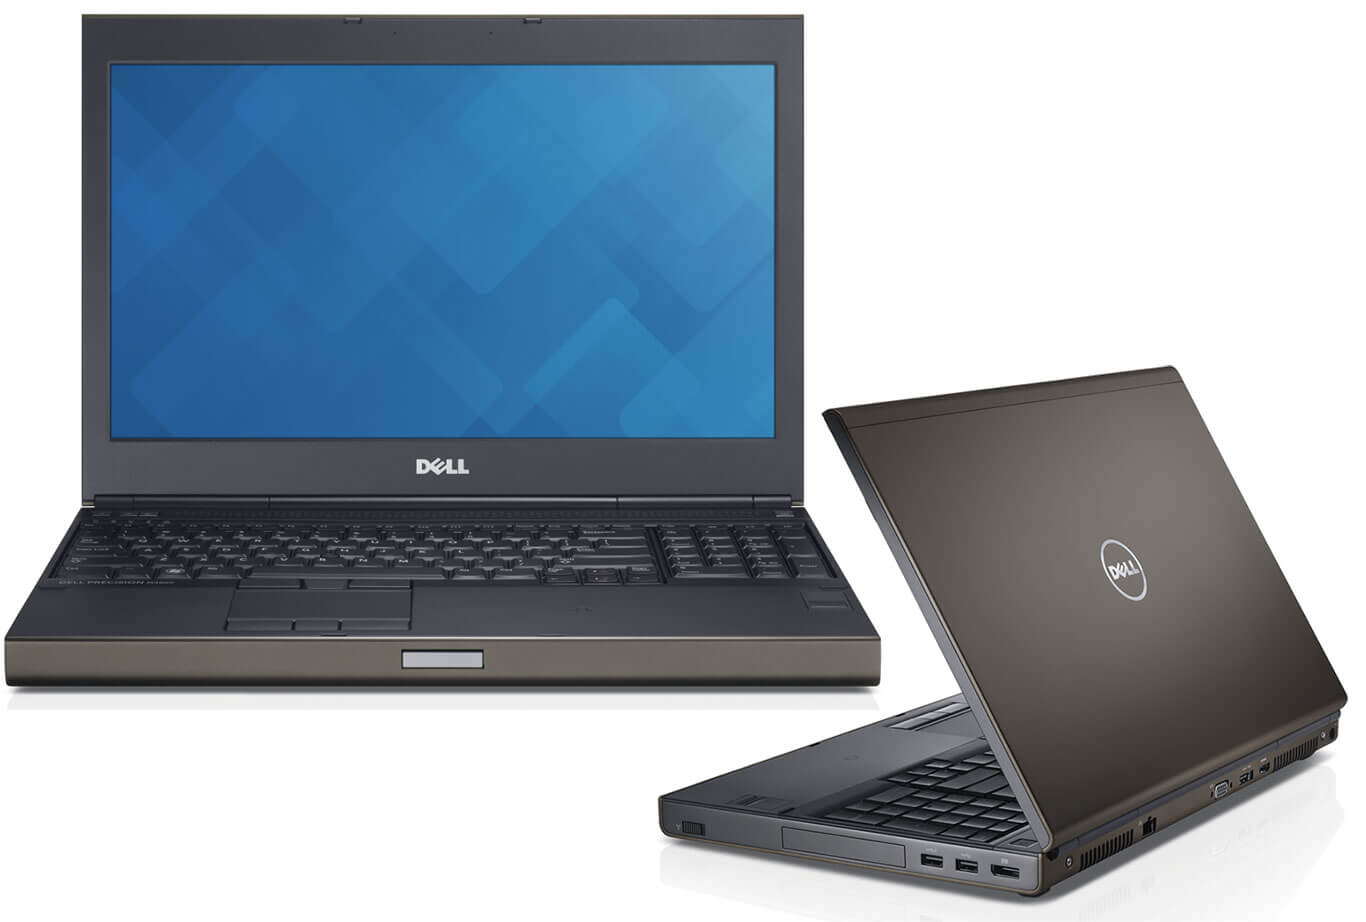 DELL PRECISION M6800 I7-4800MQ 2,7 / 16384 MB DDR3 / 500 GB SSHD / WIN 10 PRO REF / 17.3